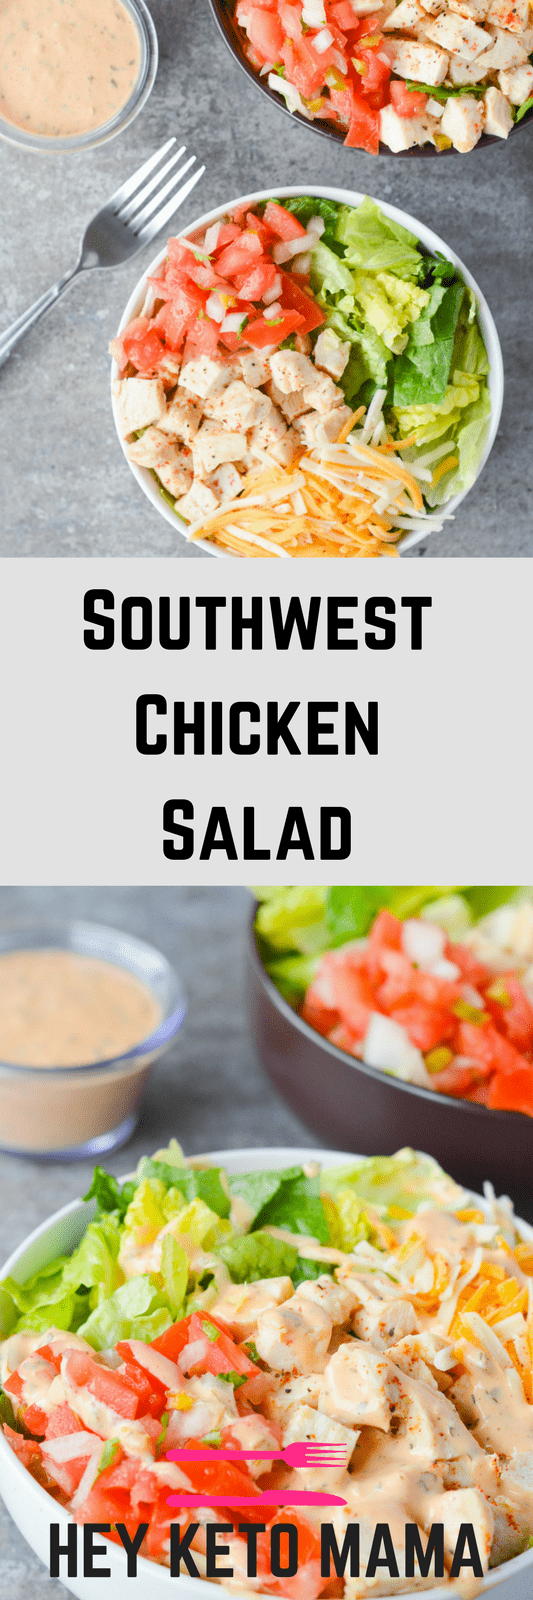 The Southwest Chicken Salad is one of my all time favorites. It's crisp, refreshing, and has just the right amount of kick. This dish is PERFECT for Spring afternoon. | heyketomama.com